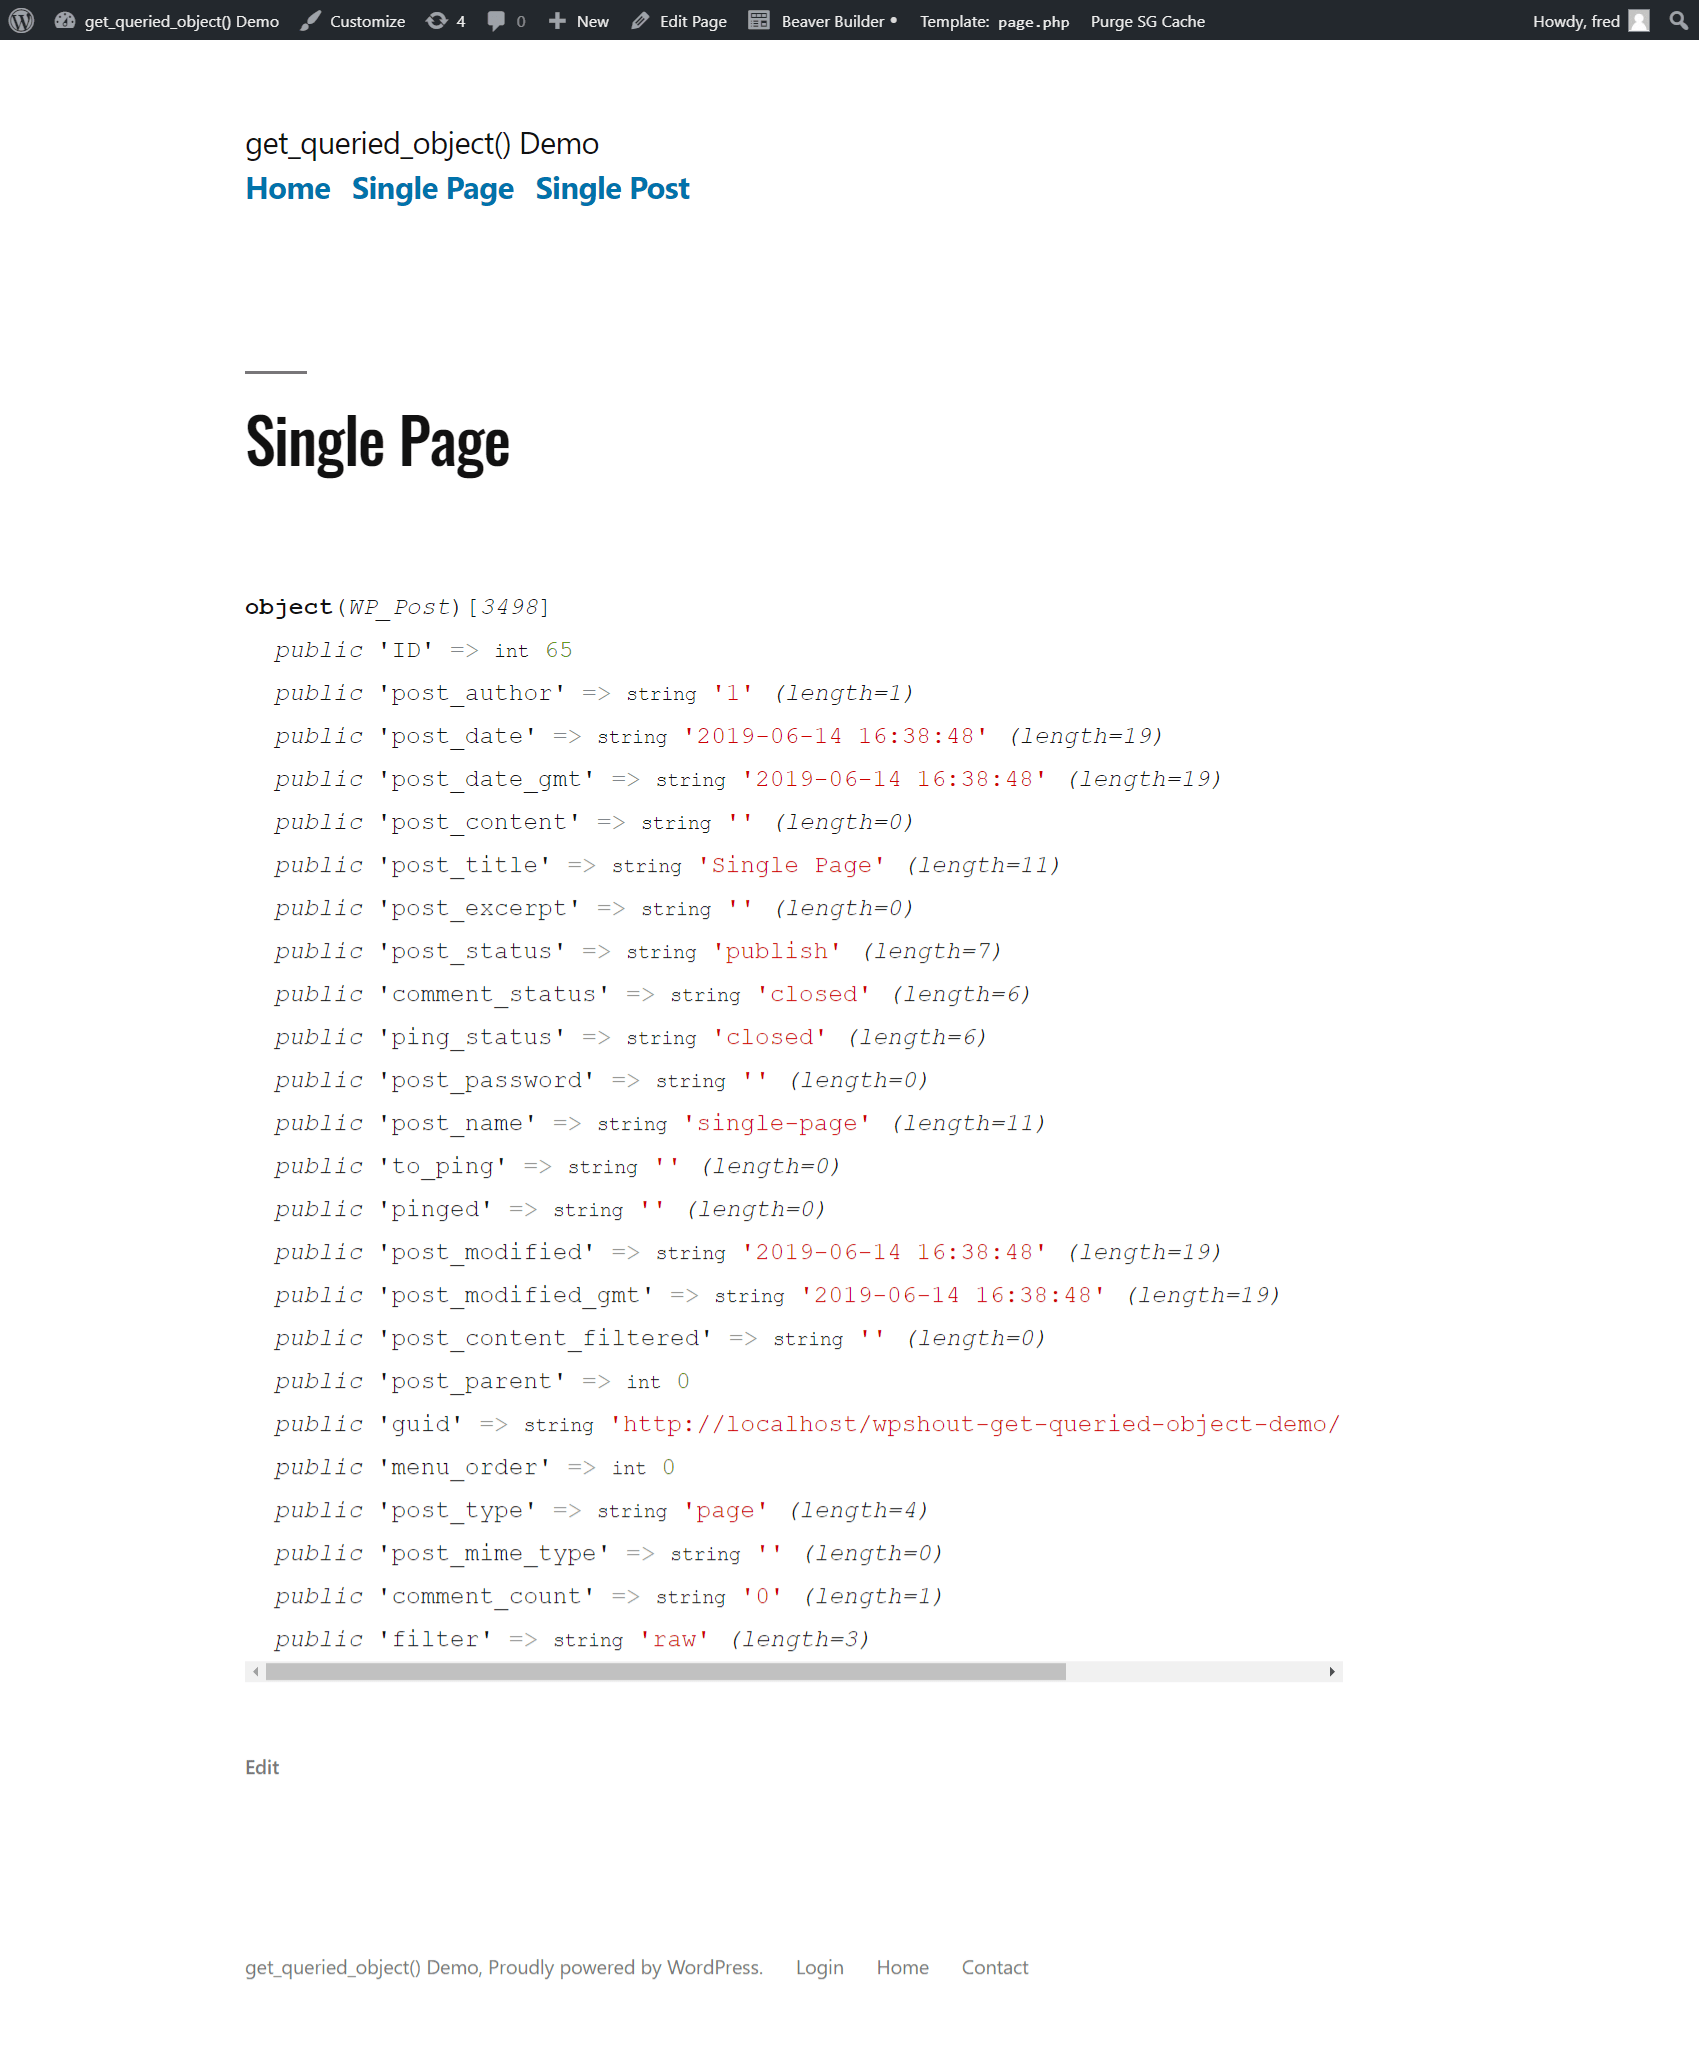 get_queried_object() example single page